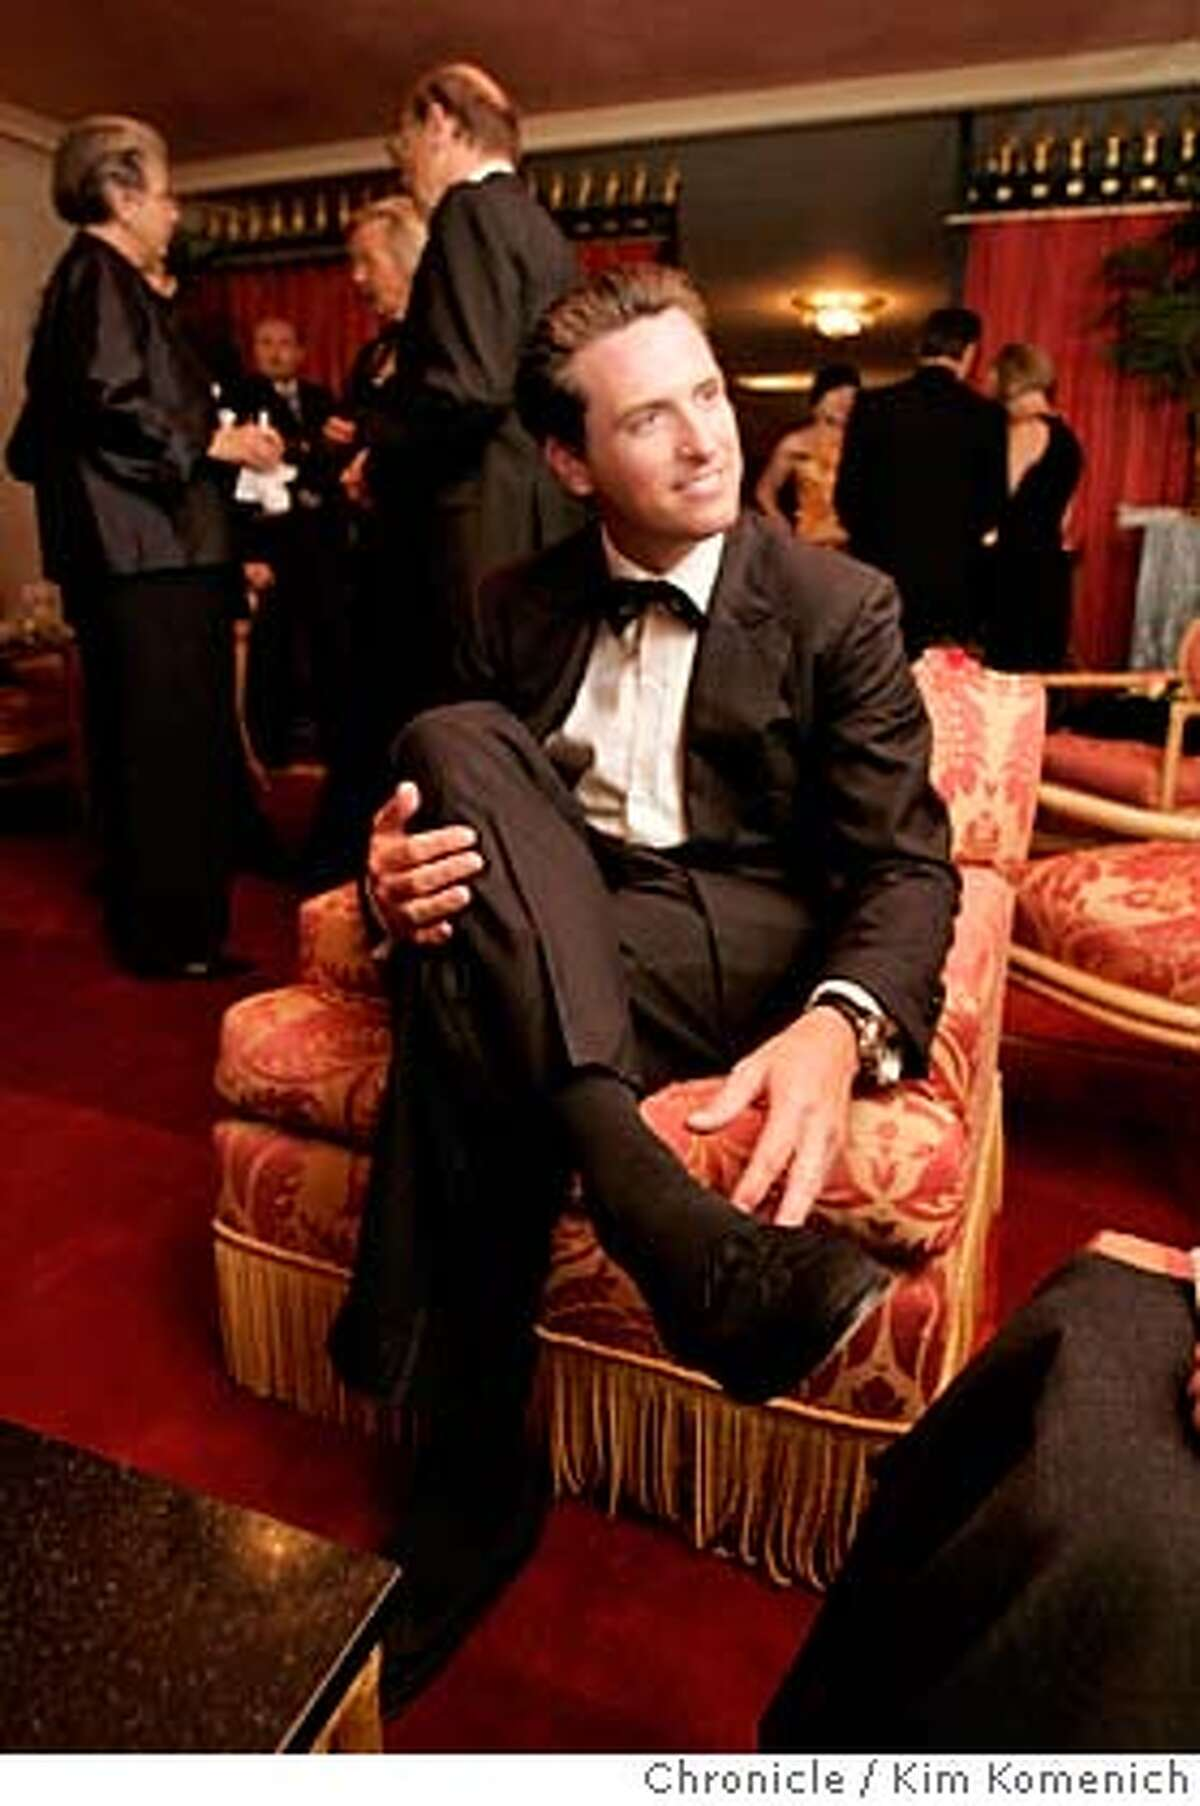 """SFOPERA_STYLE120217_kk.JPG San Francisco Mayor Gavin Newsom shows his Moroccan slippers, a souvenir from a trip to Morrocco when he was in the seventh grade. The San Francisco Opera's 83rd opening night gala. NOTE: This shoot (for Bigelow) was done simultaneously with ROSENBURG12 (for Zinko.) We follow operagoers through the parties before the Opera' s performance of """"Italian Girl in Algiers."""" We also shadow outgoing Opera General Director during the hours before the opening. San Francisco Chronicle Photo by Kim Komenich 9/10/05"""